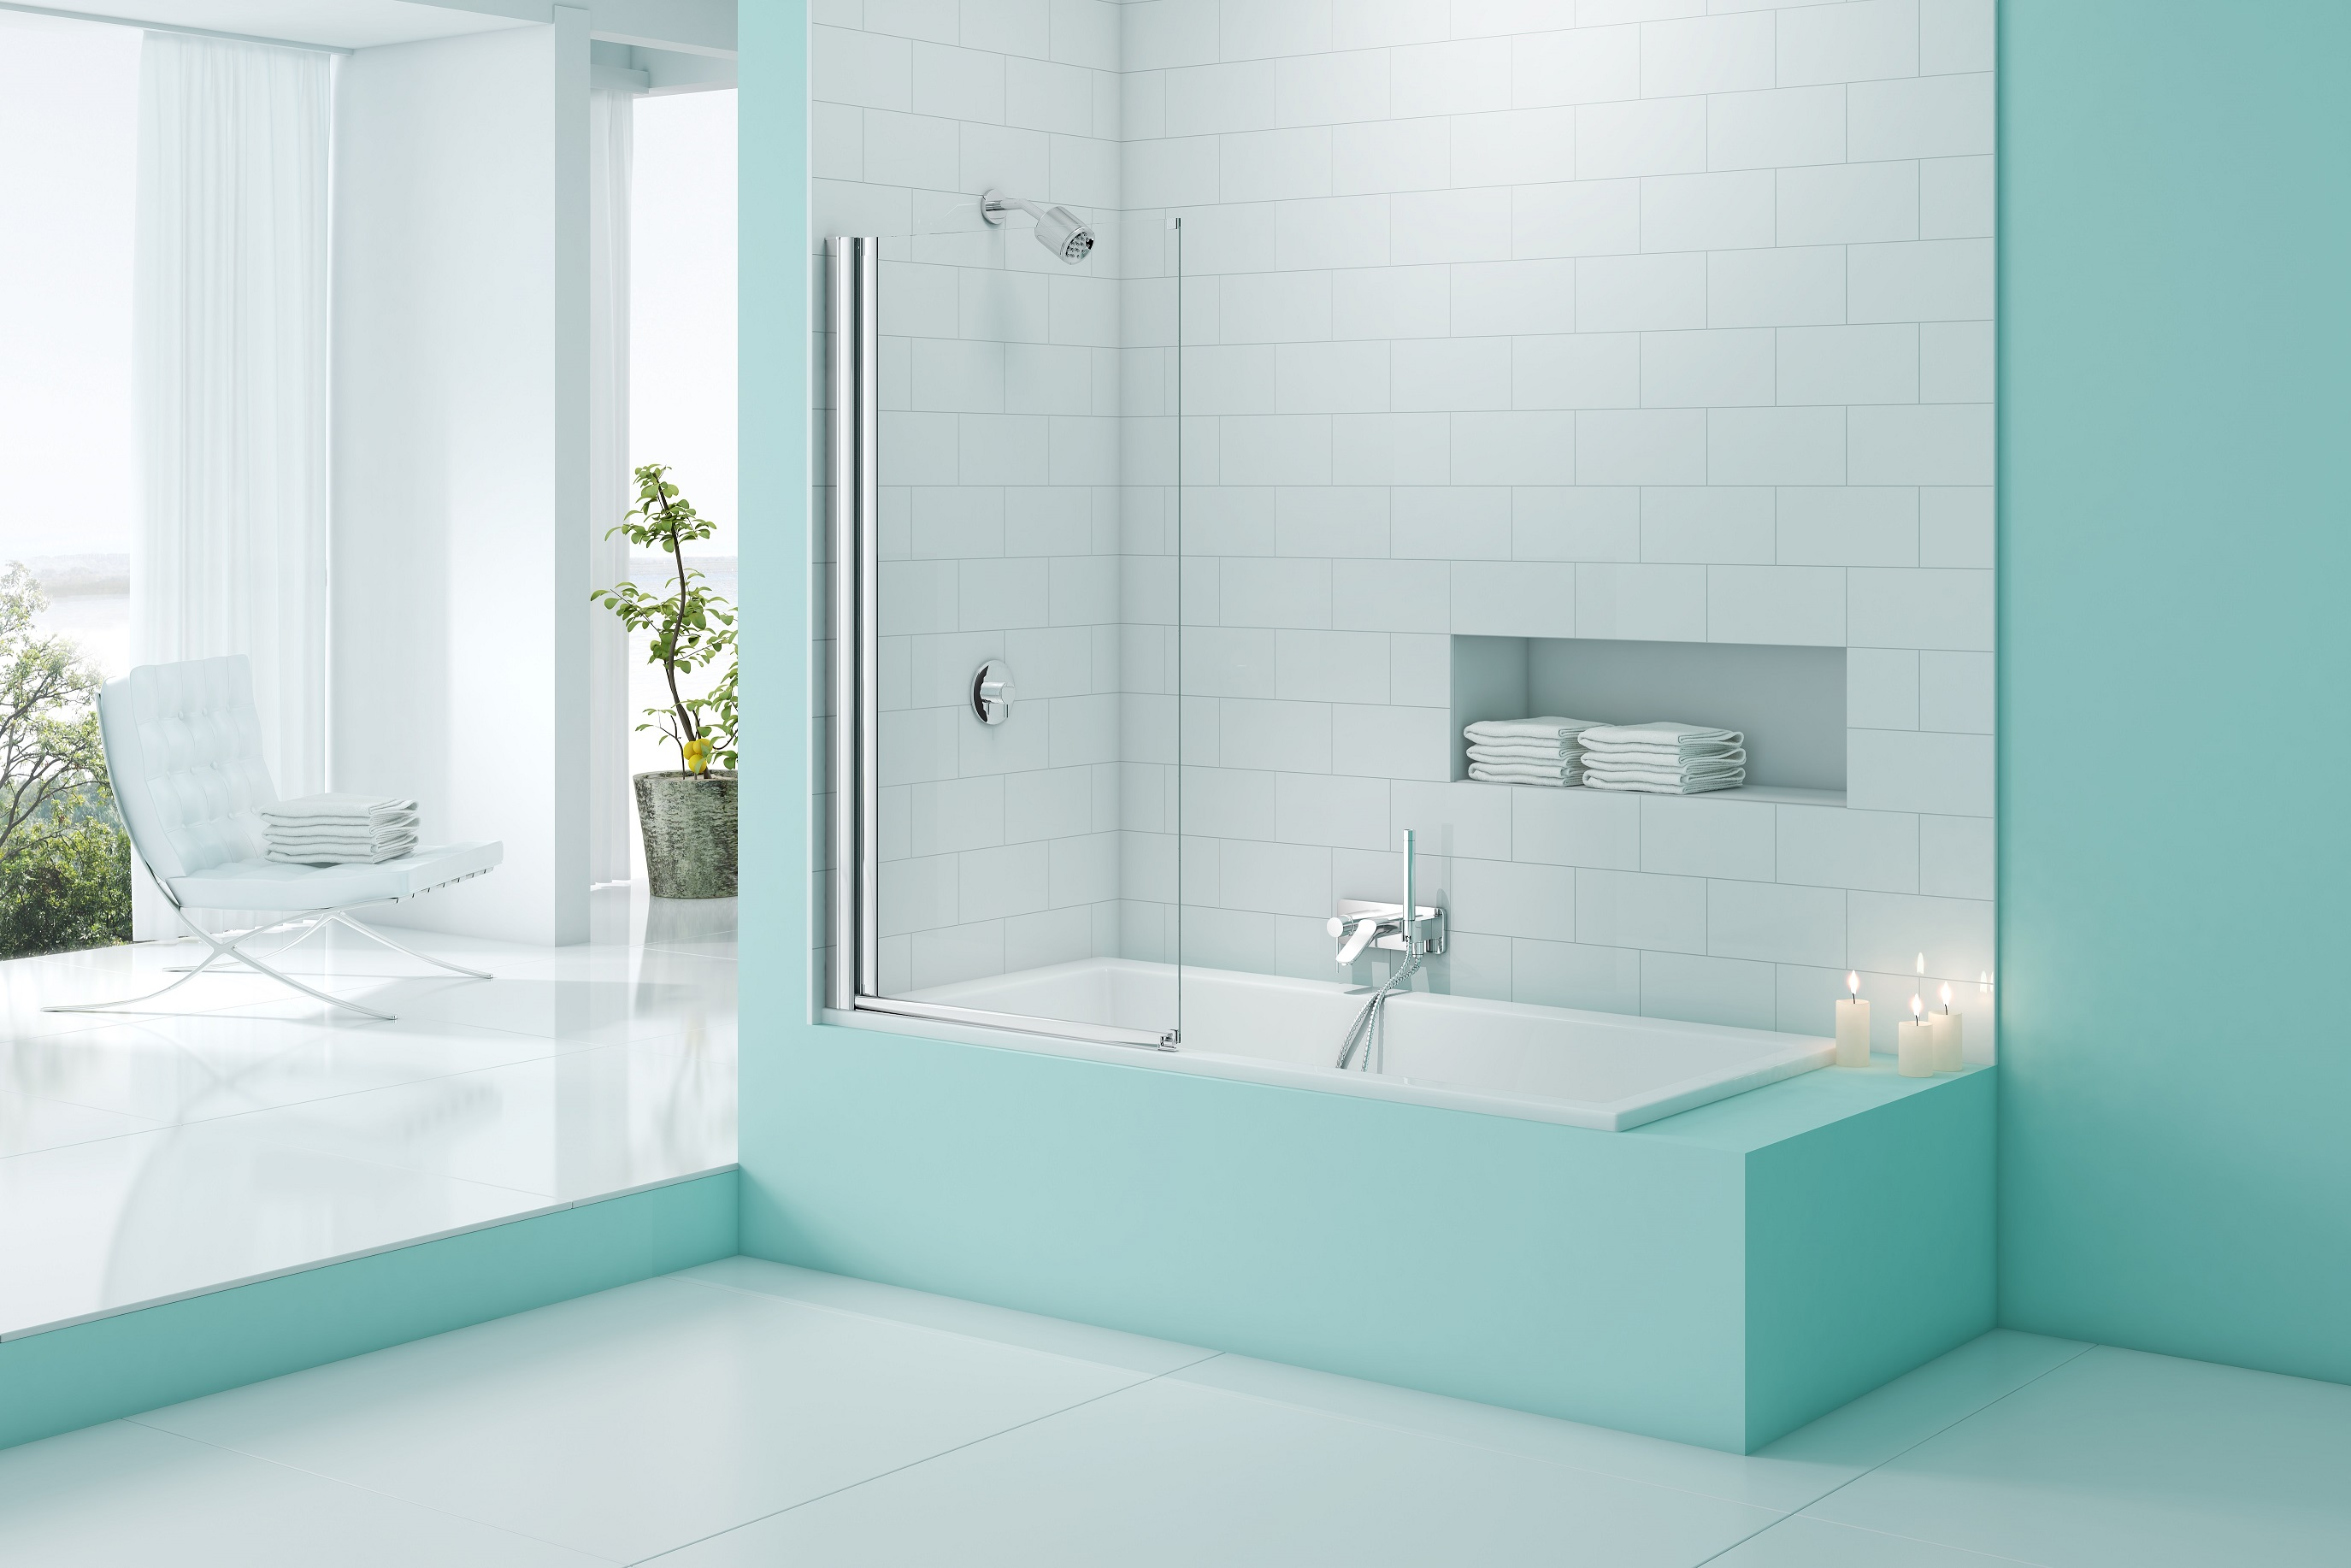 Merlyn SecureSeal Bath Screens - Showers To You